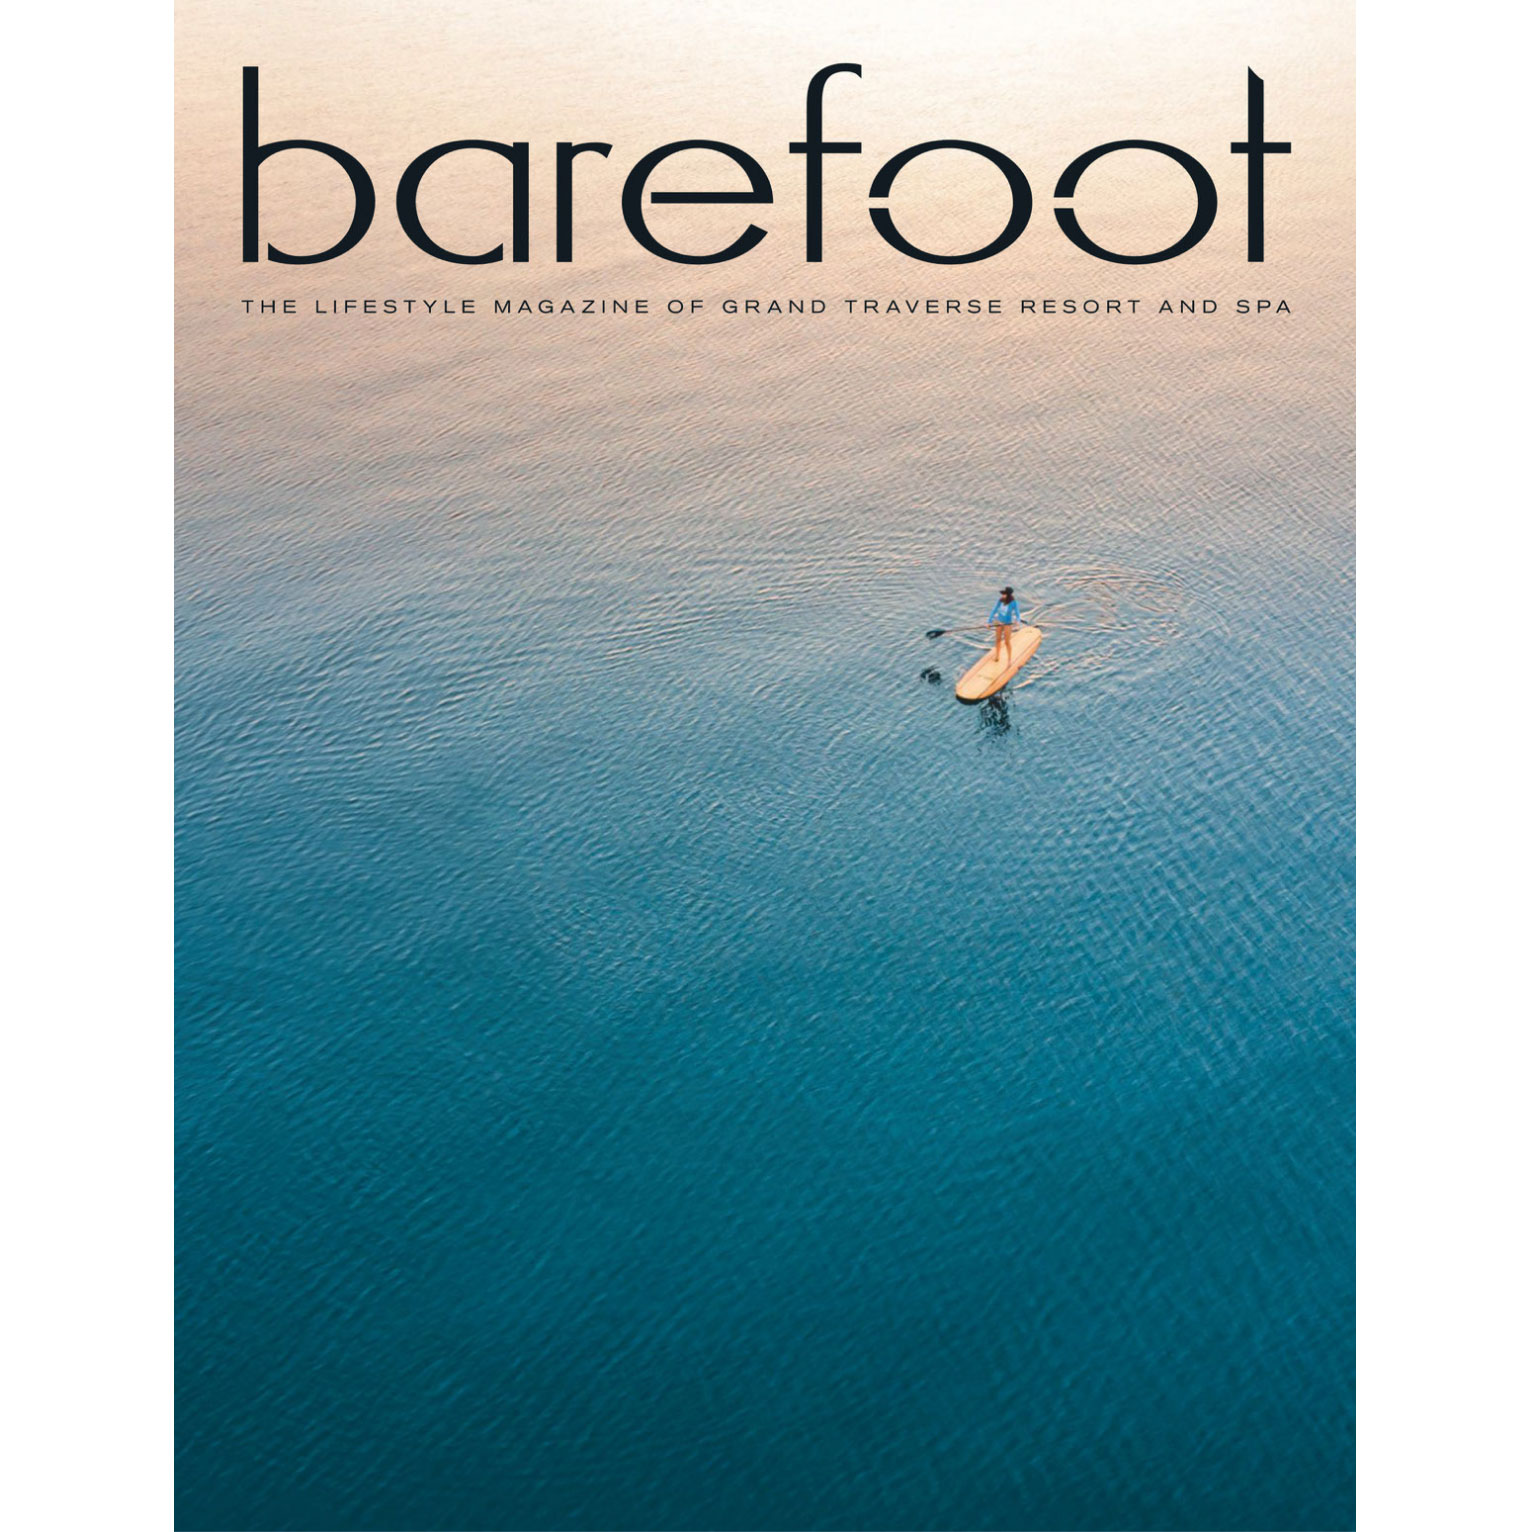 Request Issue of Barefoot Magazine